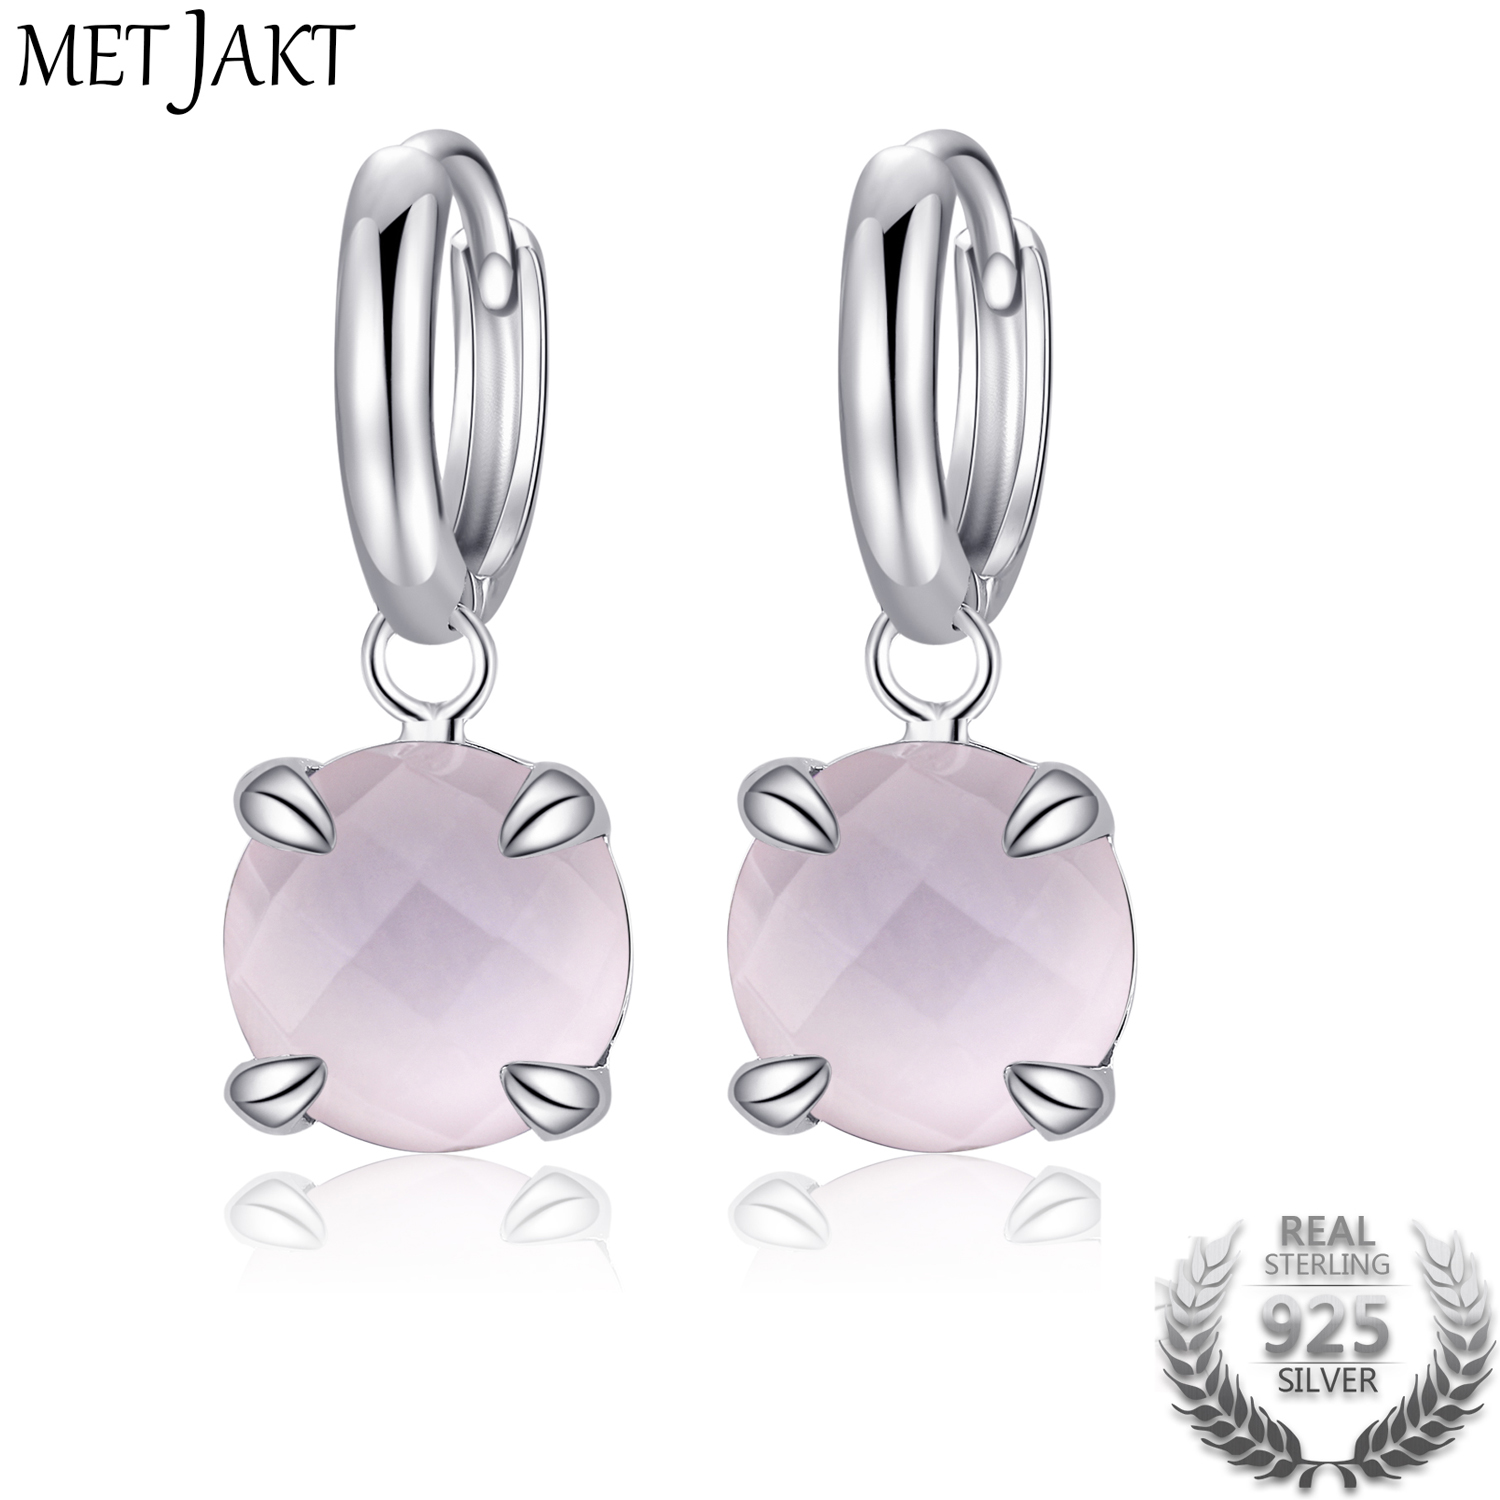 MetJakt Authentic Natural Rose Quartz Gemstone Beauty Effect Classic 925 Sterling Silver Hook Earrings for Women